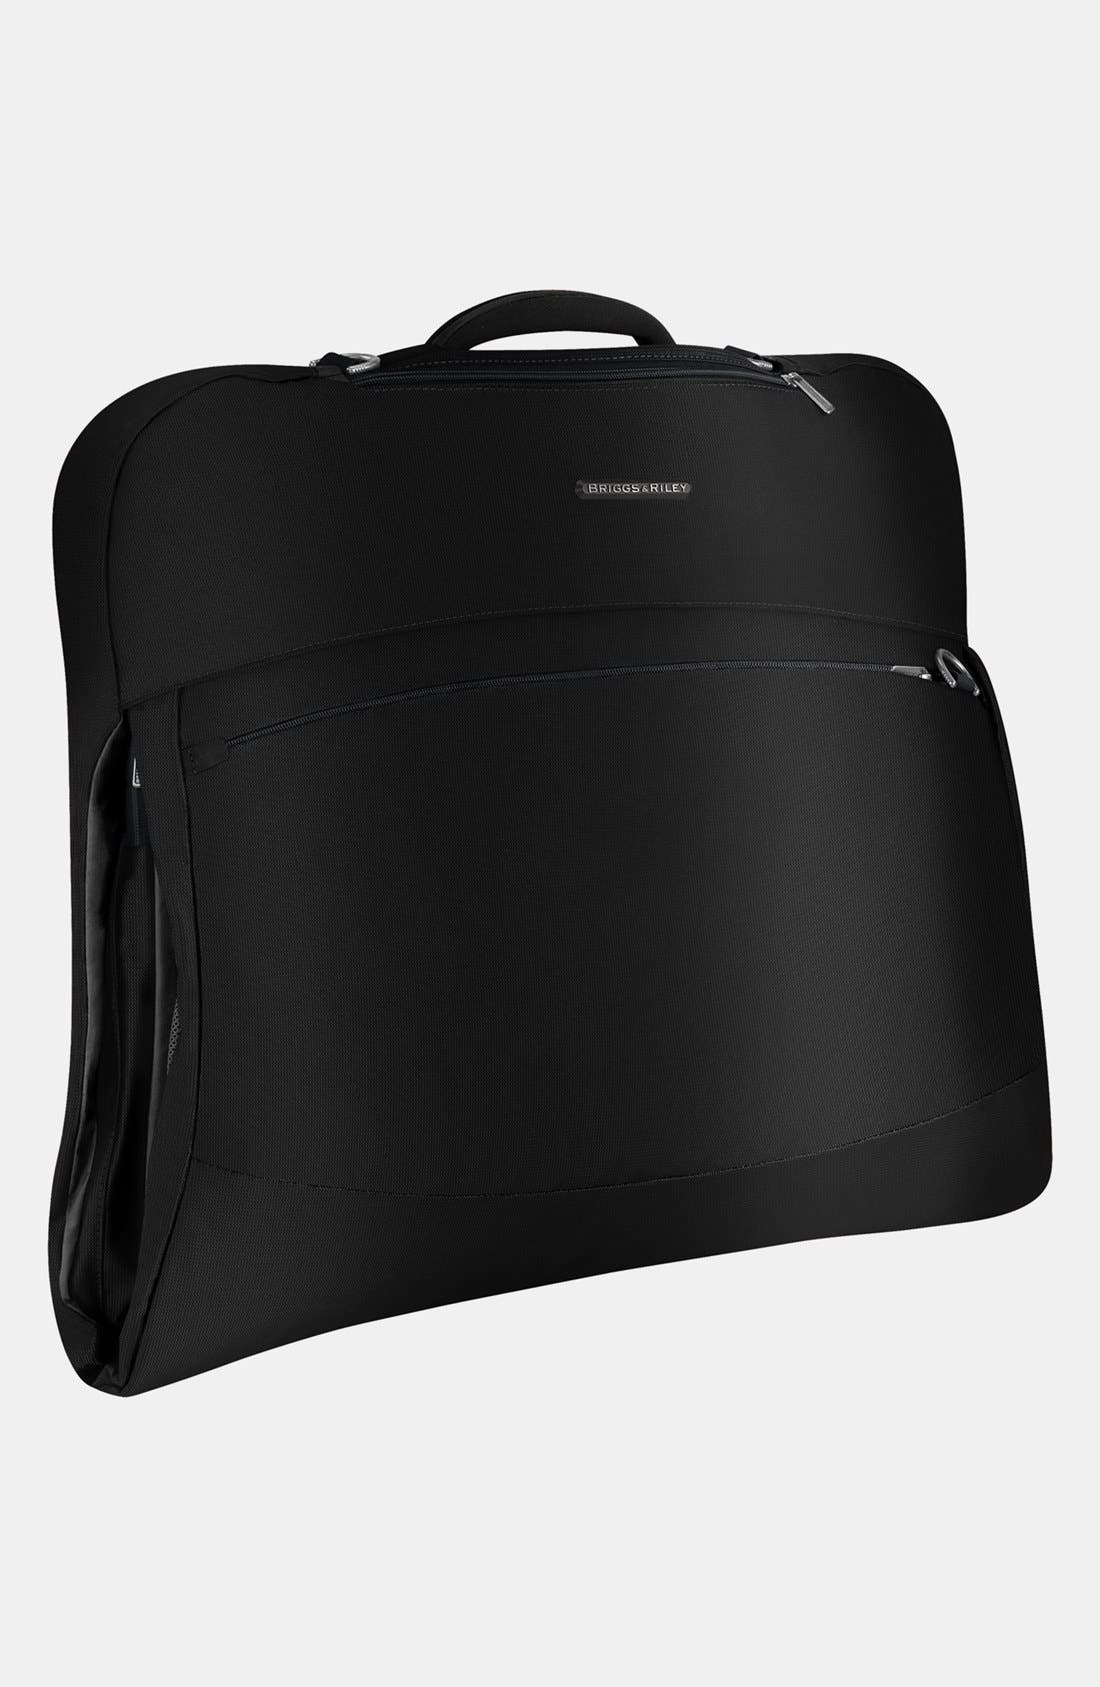 Alternate Image 1 Selected - Briggs & Riley 'Transcend Deluxe' Garment Bag